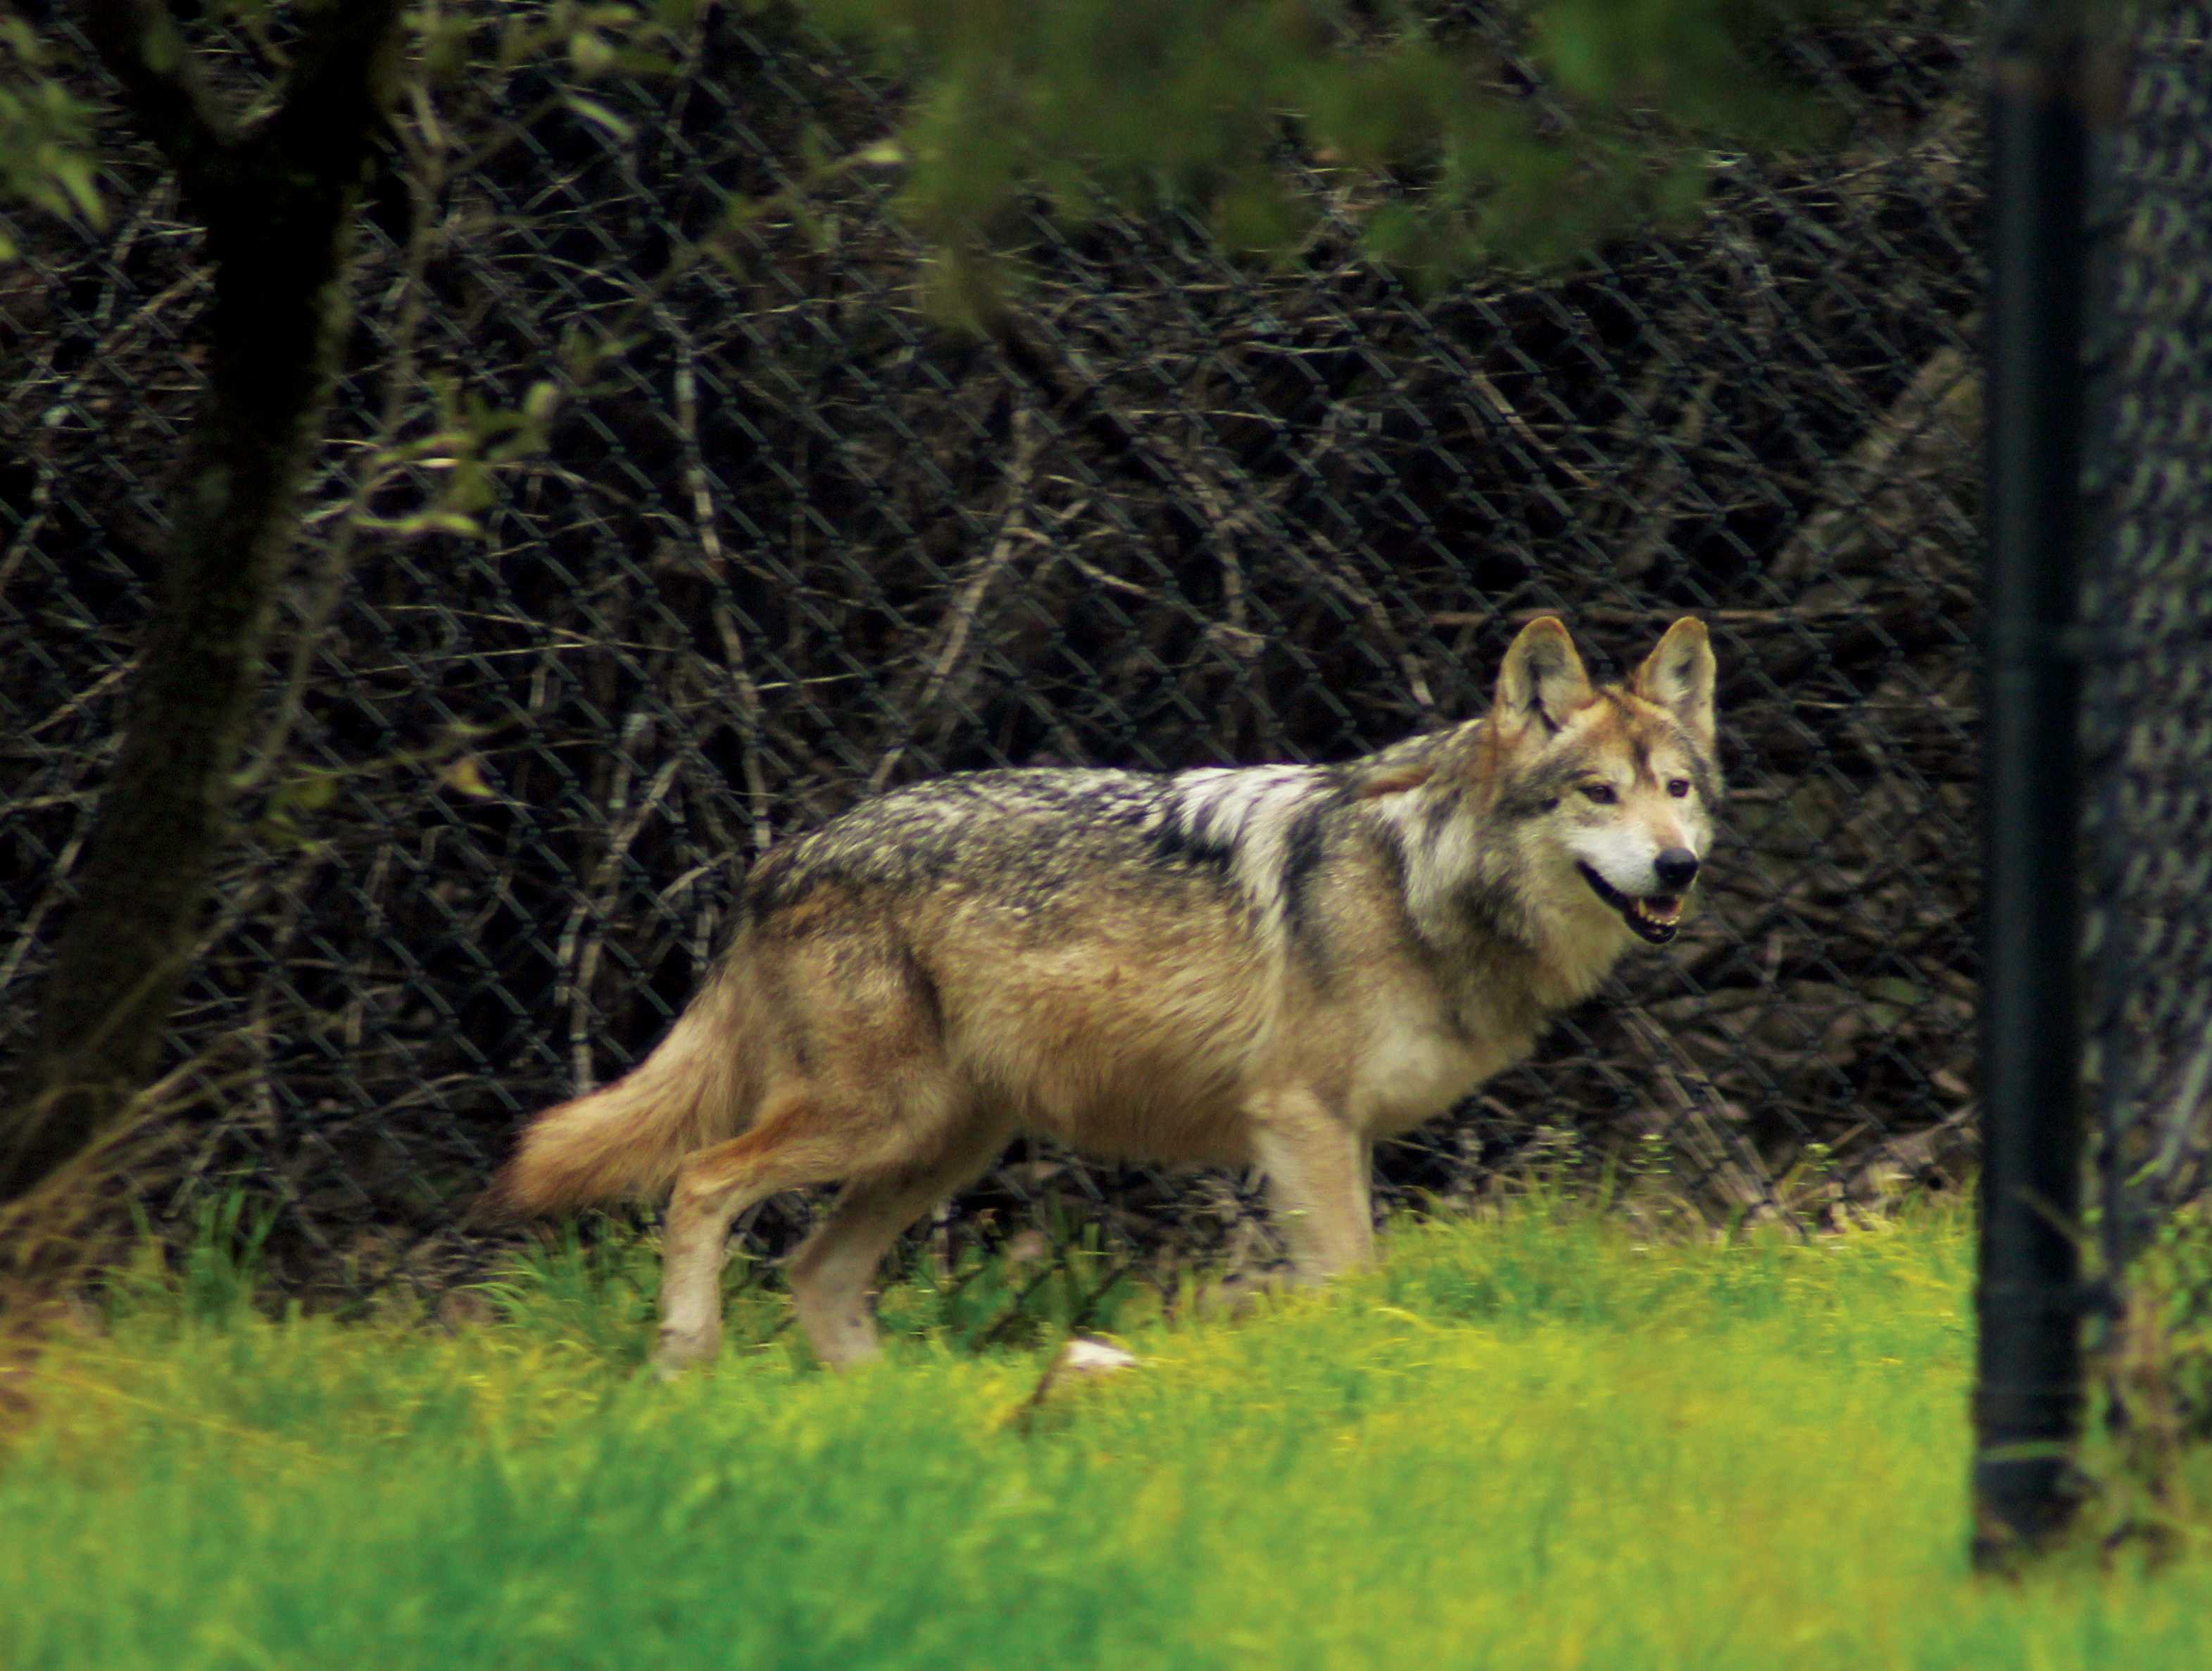 Serena, a 10-year-old Mexican Grey Wolf, looks on at the passing visitors. This species of wolf is now considered endangered, according to Fossil Rim's website.